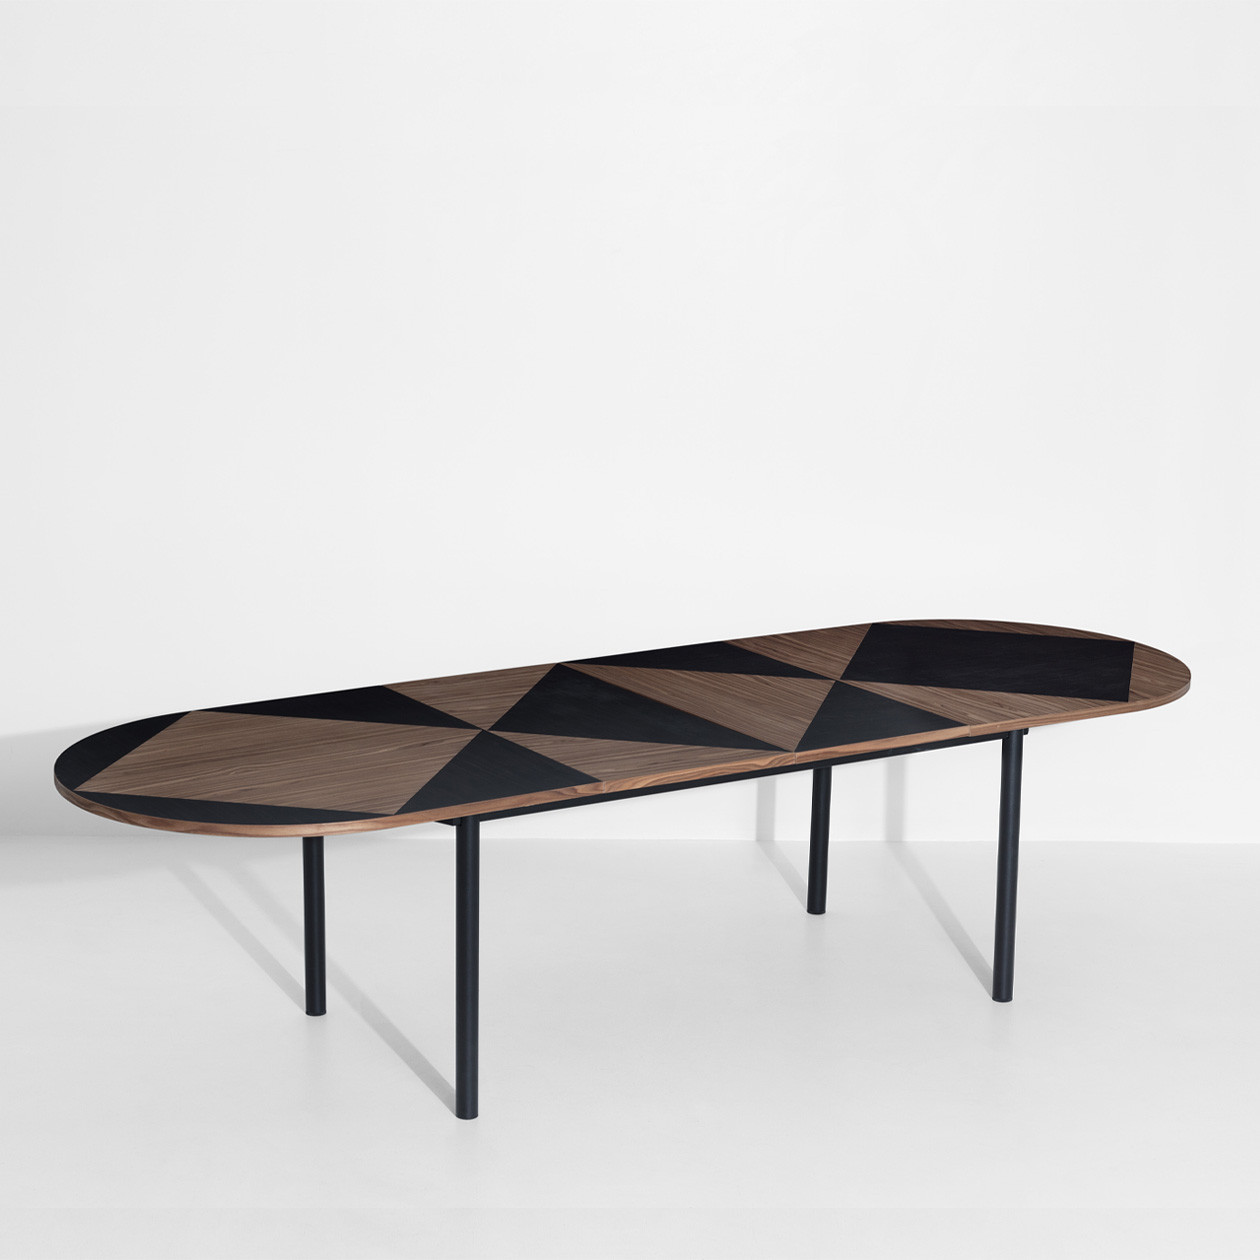 Tavla Extendable Oval Table - Tavla inspiration comes from the personal story of Léa, who's part Iranian, and has been admiring the work on backgammon tables, Tavla being the Iranian word for backgammon. Tavla table is a modern take on the traditional technique of marquetry: Pool studio created a strong and graphic design using the most classical technique. They used two different colours of walnut wood to create a contrasted pattern on the tabletop. | Matter of Stuff